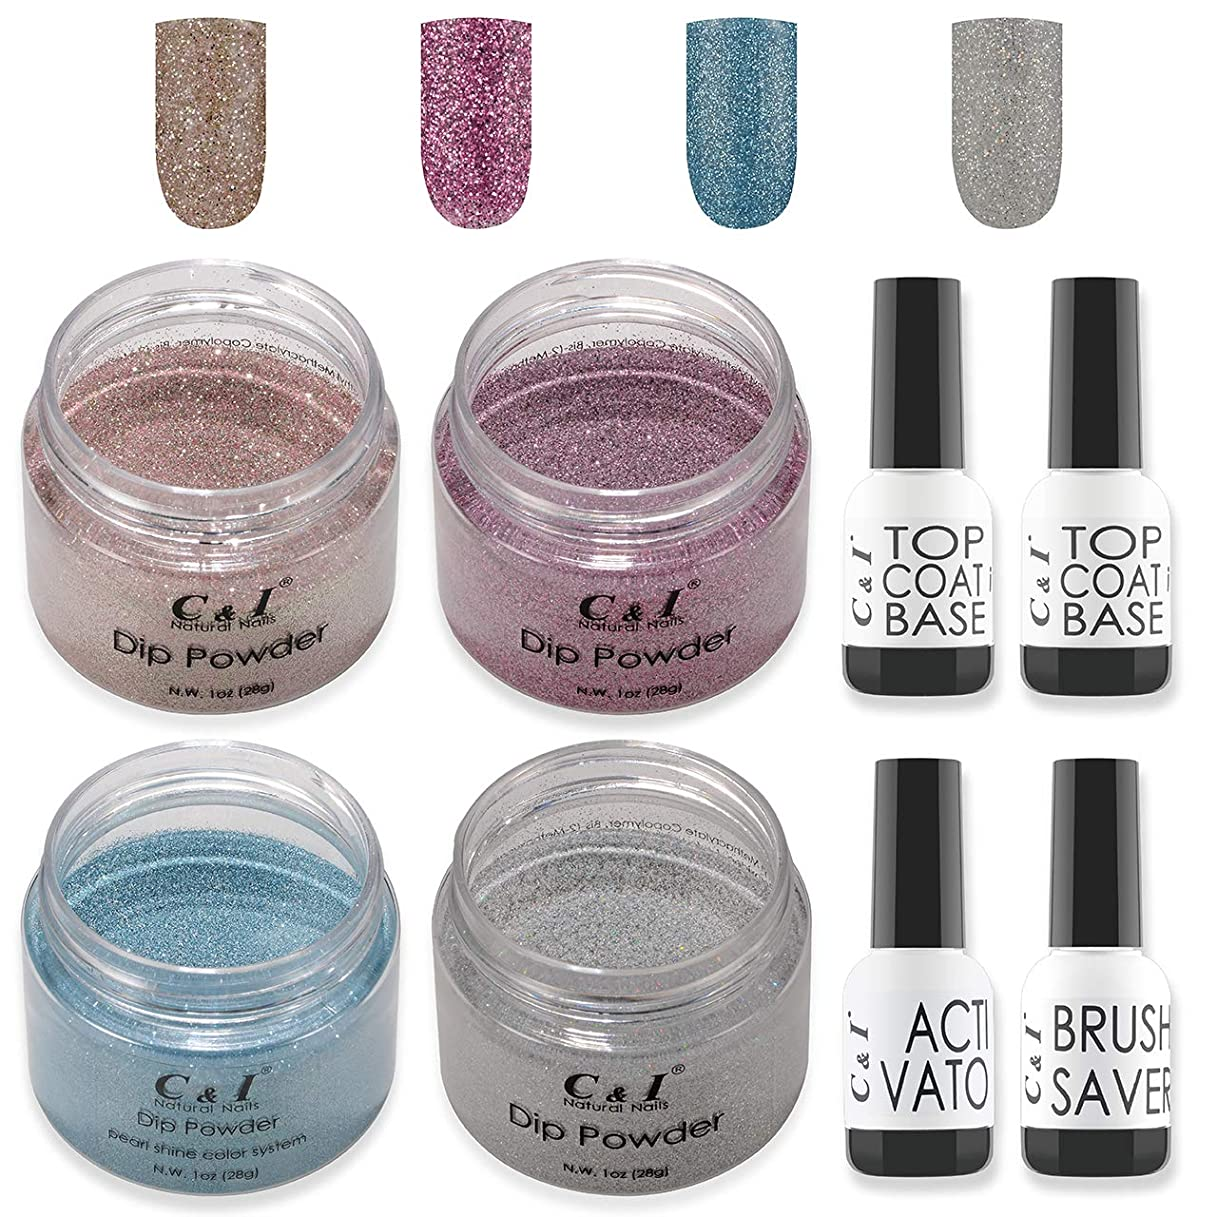 振るスラック納屋C&I Dip Powder Nail Colors & Liquids Set, 4 colors and 4 liquids, glittering nail powder, N.W. 28 g * 4 pcs & 15 ml * 4 pcs